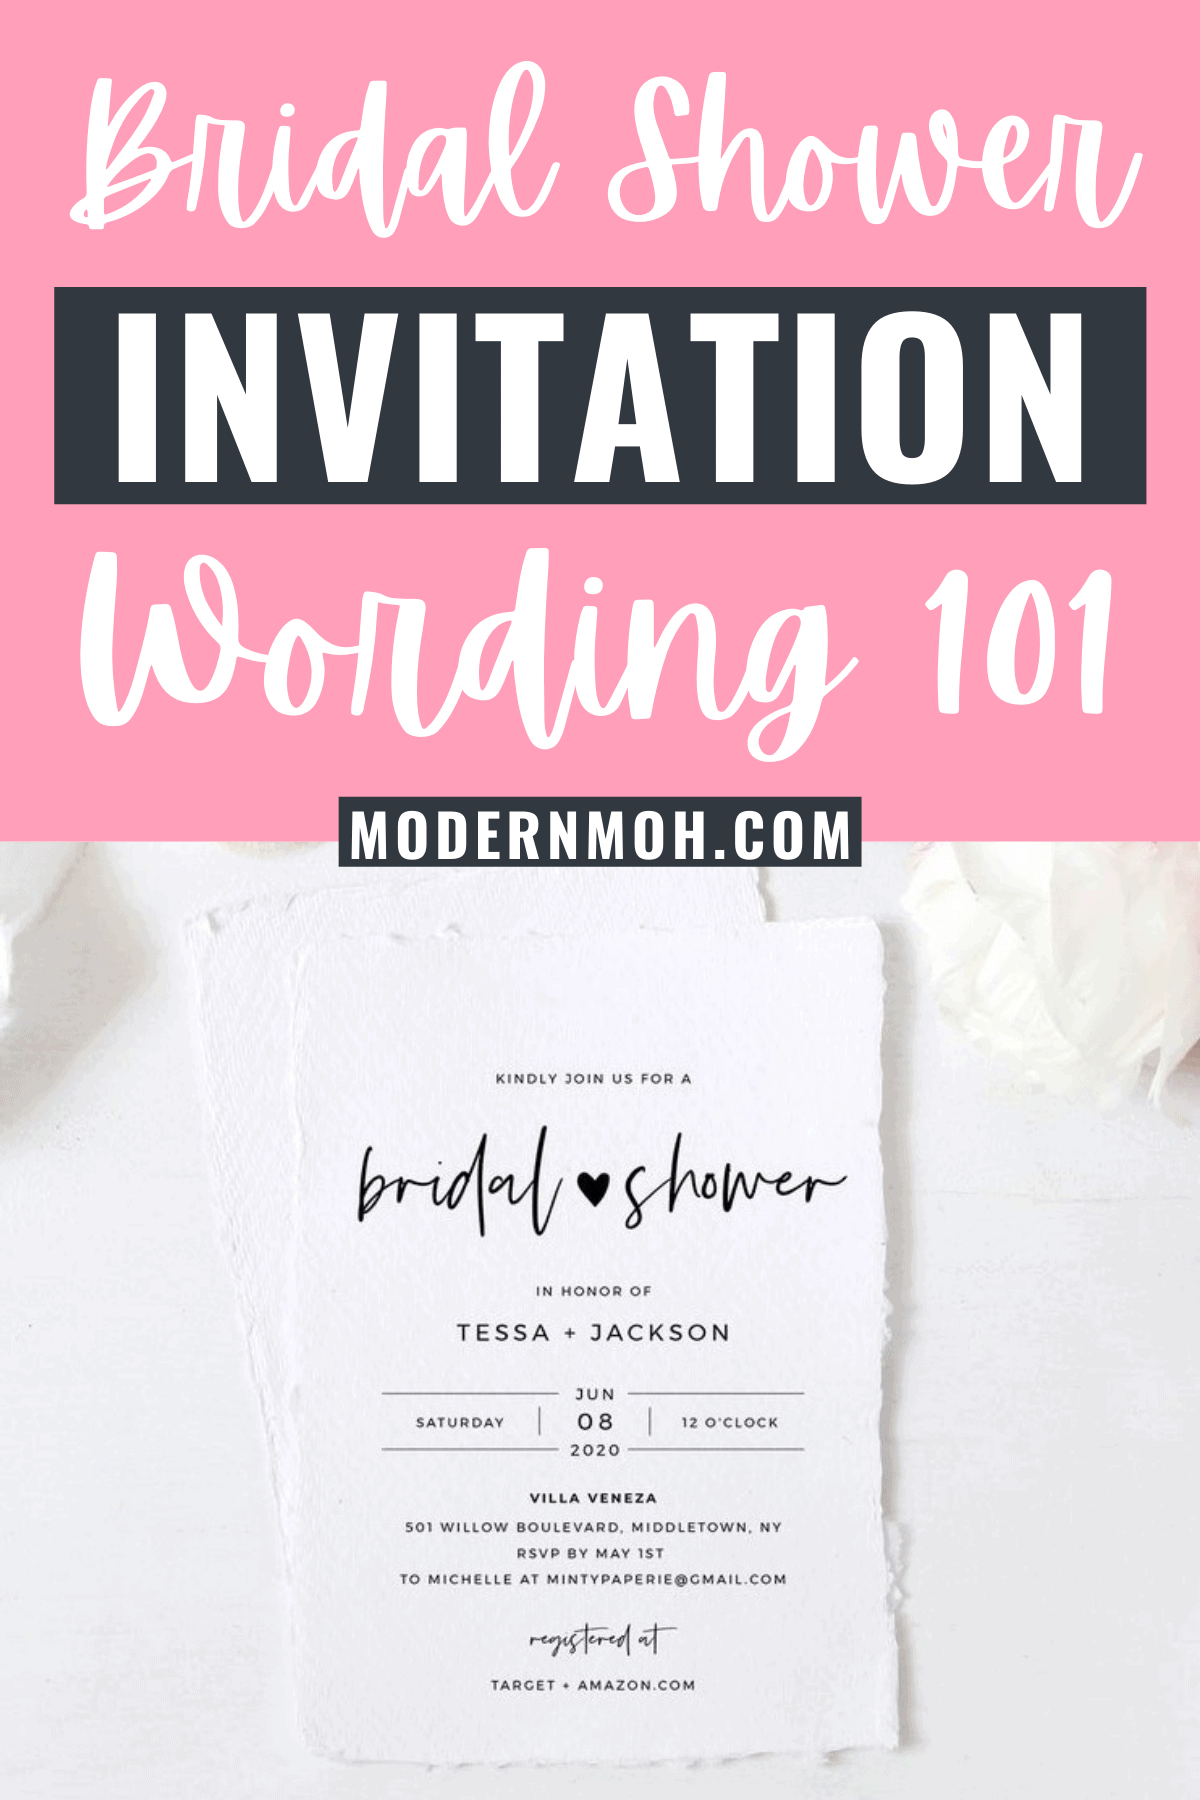 Bridal Shower Invitation Wording: Must-Have Details and Examples